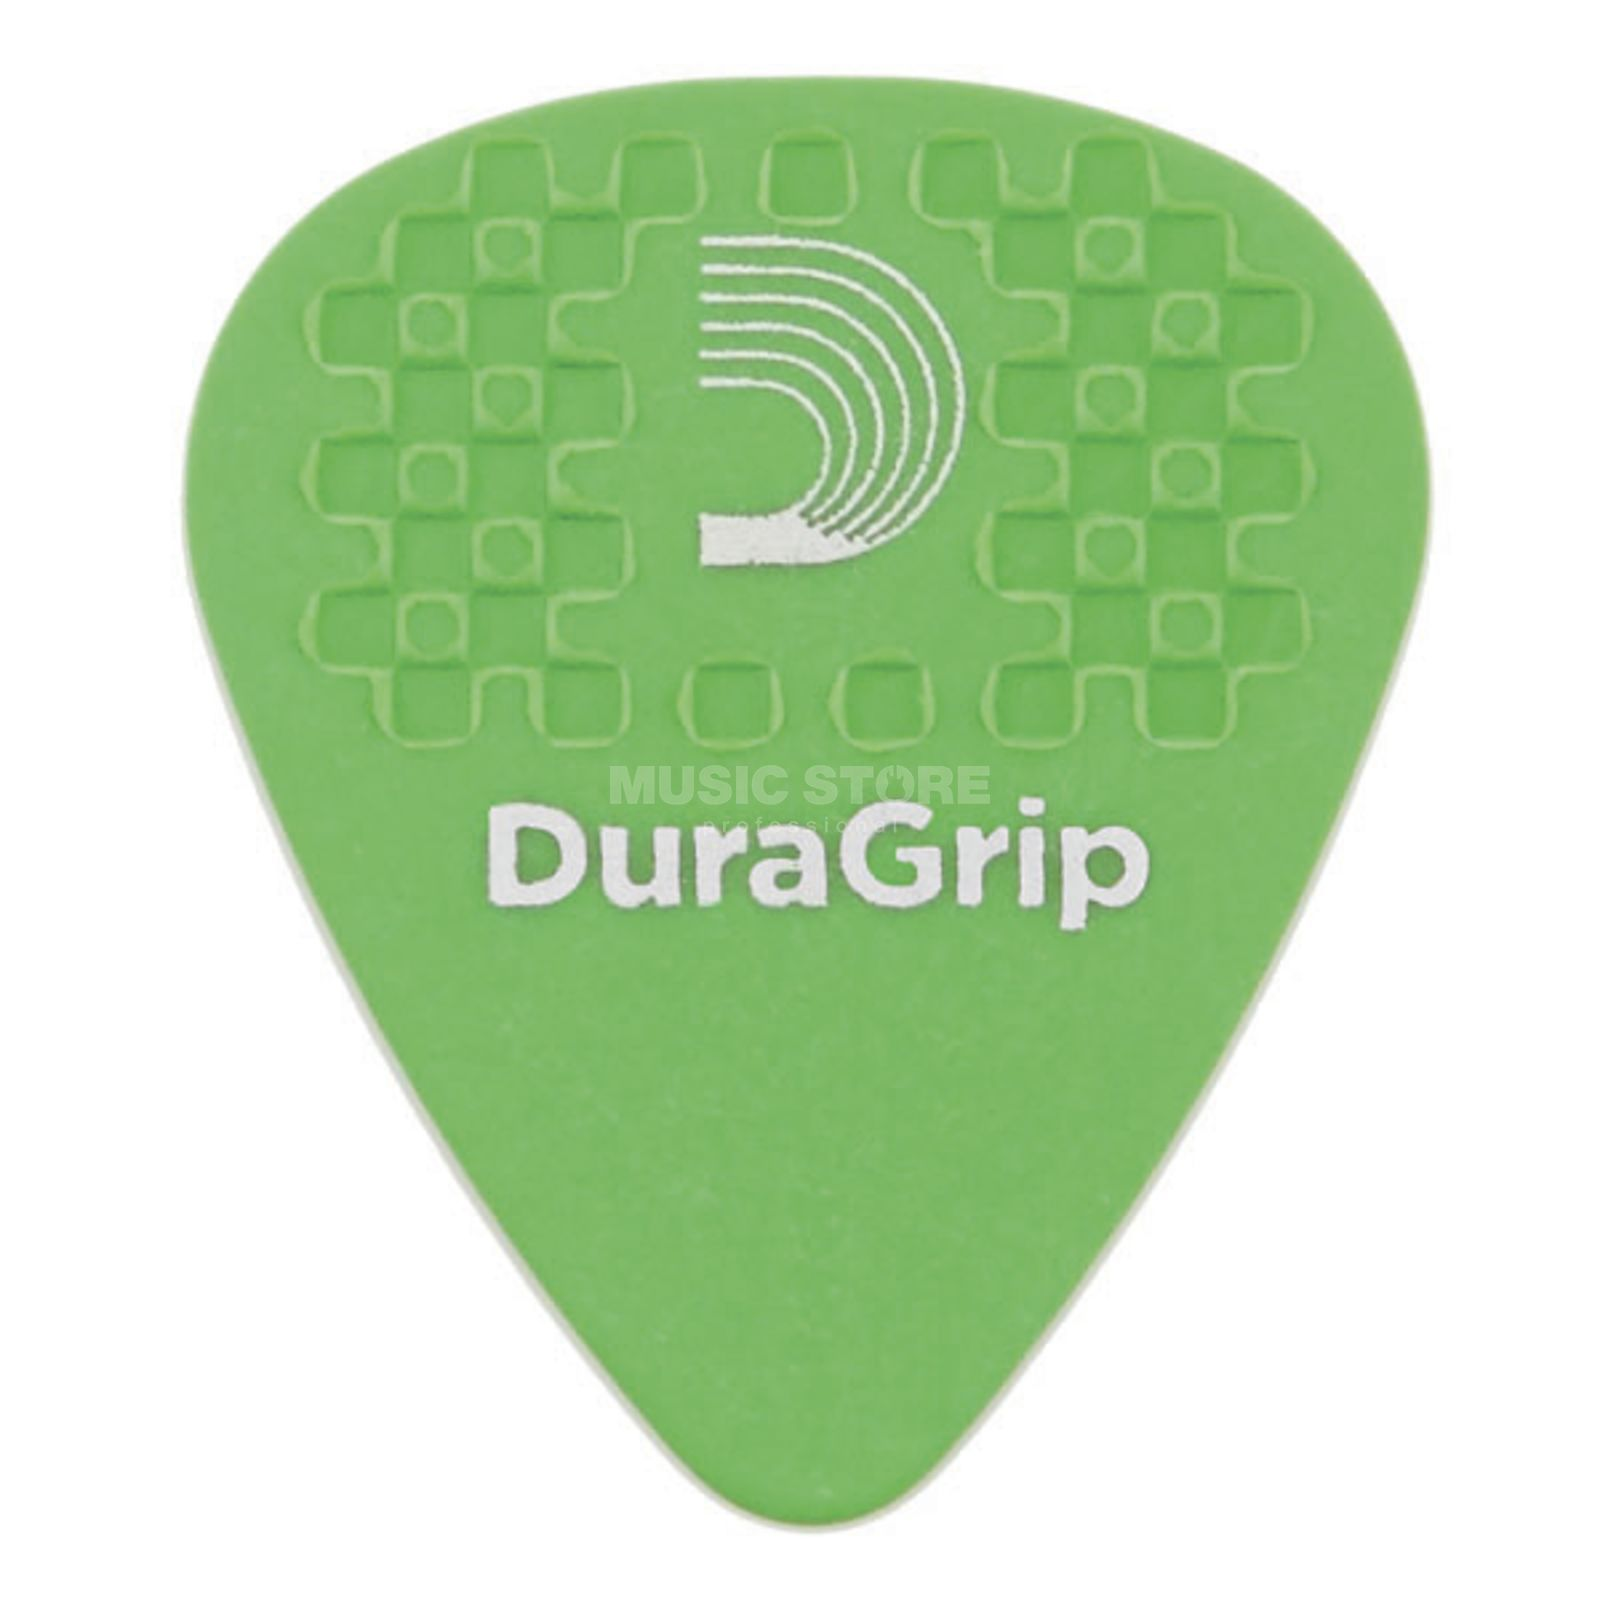 D'Addario Planet Waves DuraGrip Picks Medium 10-Pack, 7DGN4-10 Immagine prodotto